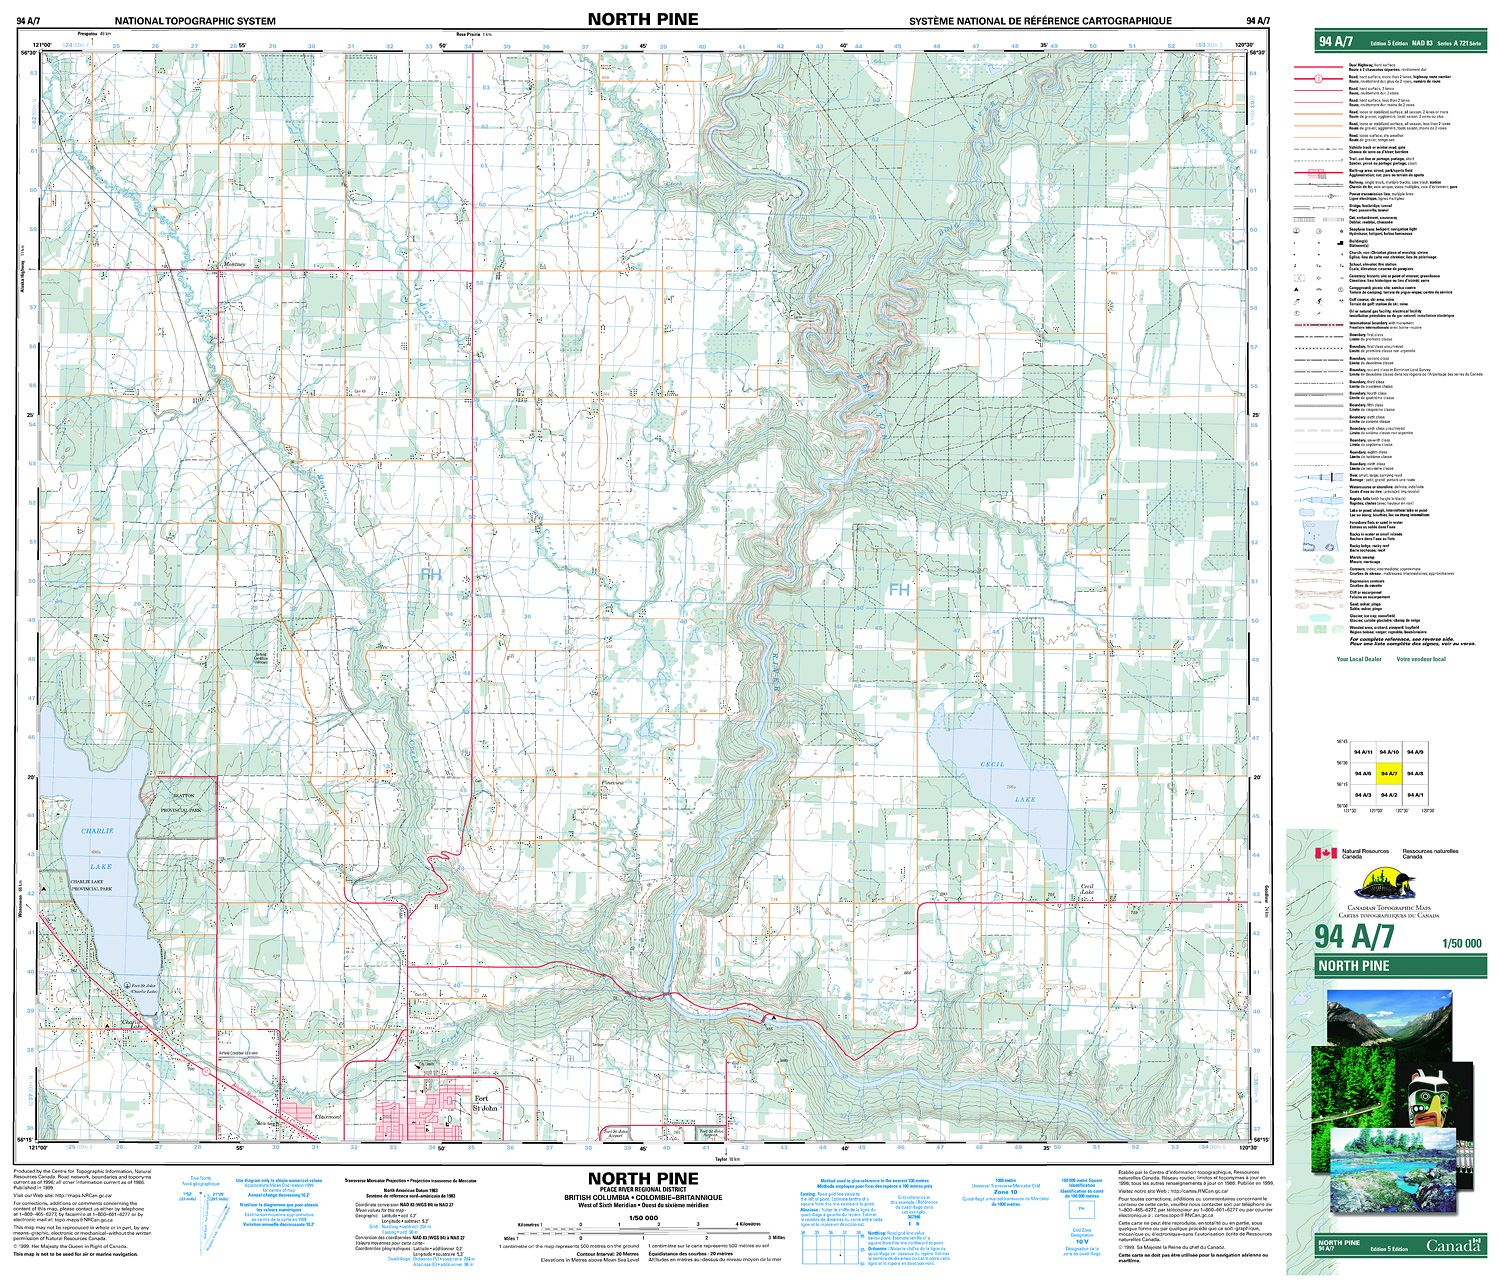 094a07 North Pine Topographic Map